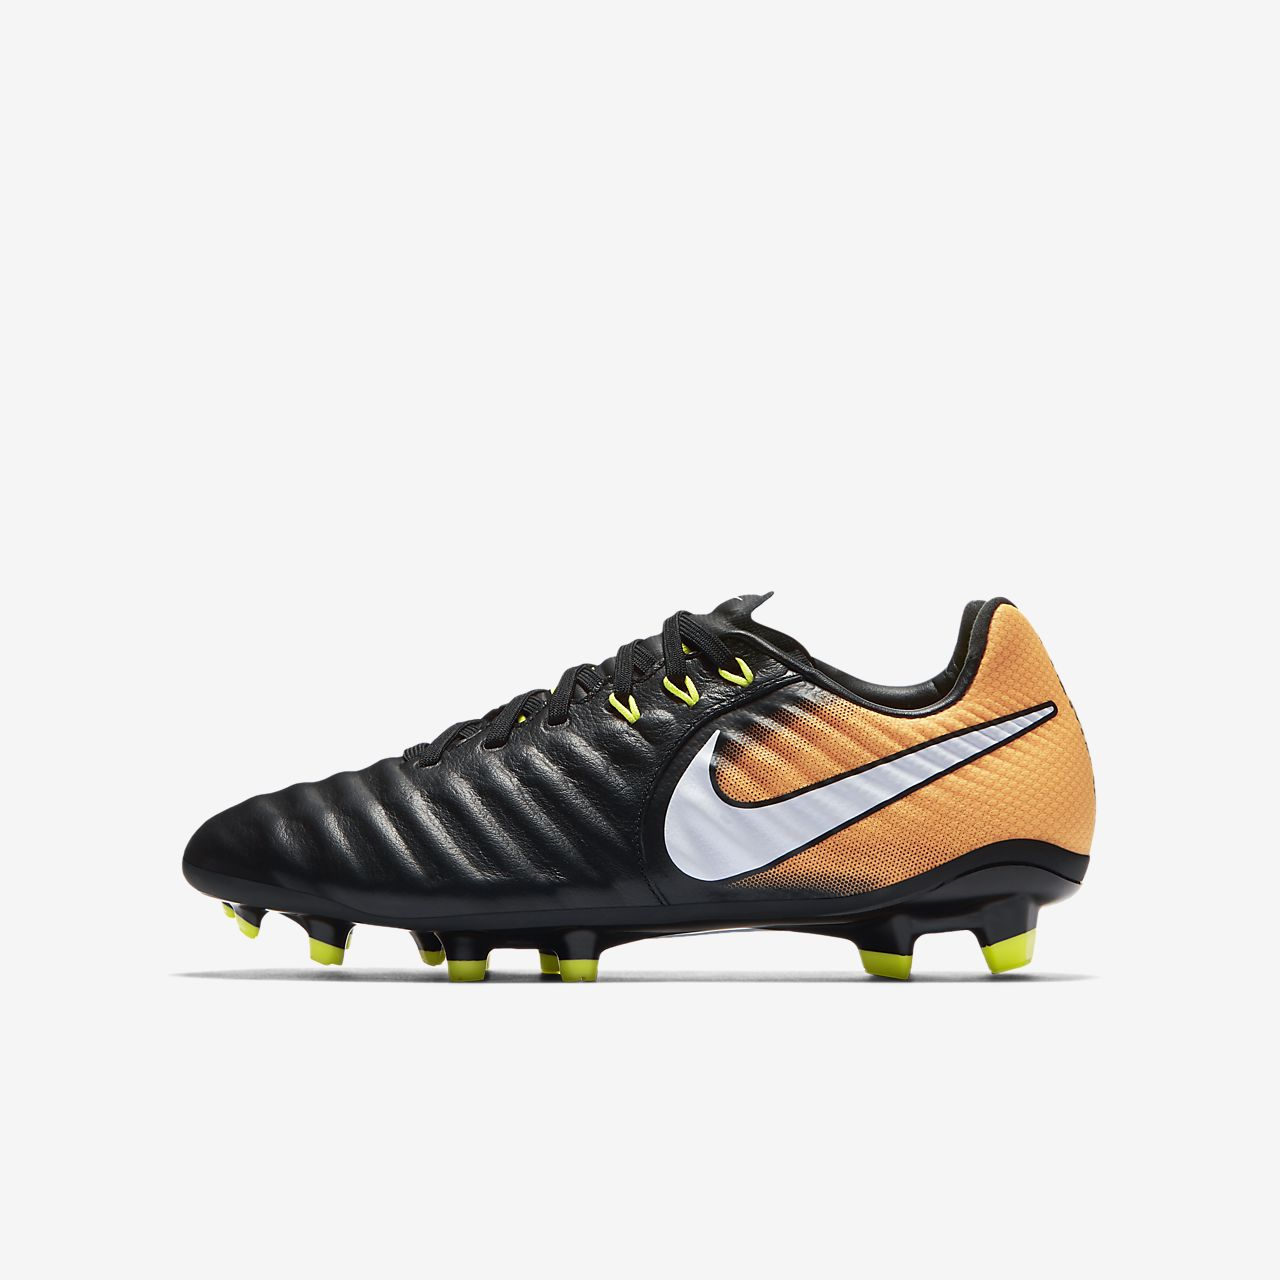 Nike Legend 7 Club FG Men's ... Firm Ground Soccer Cleats recommend sale online uvsh2